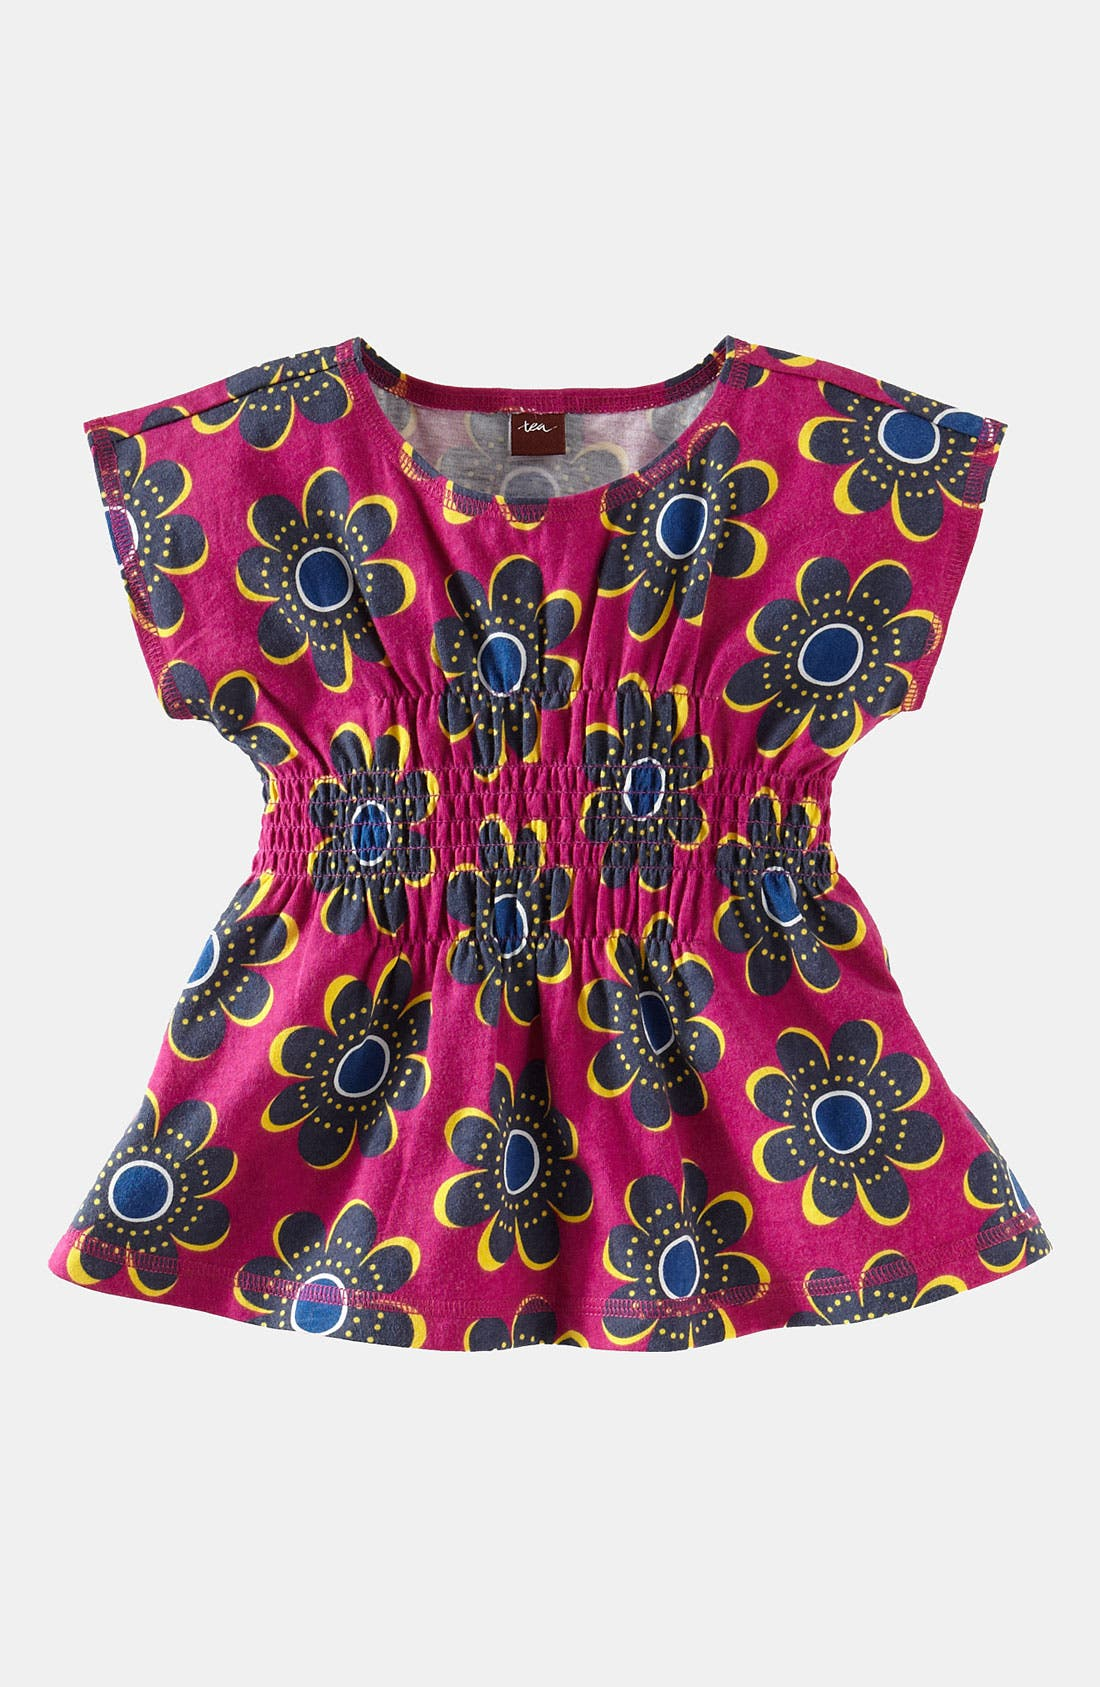 Alternate Image 1 Selected - Tea Collection 'Rosebank' Smocked Top (Toddler)